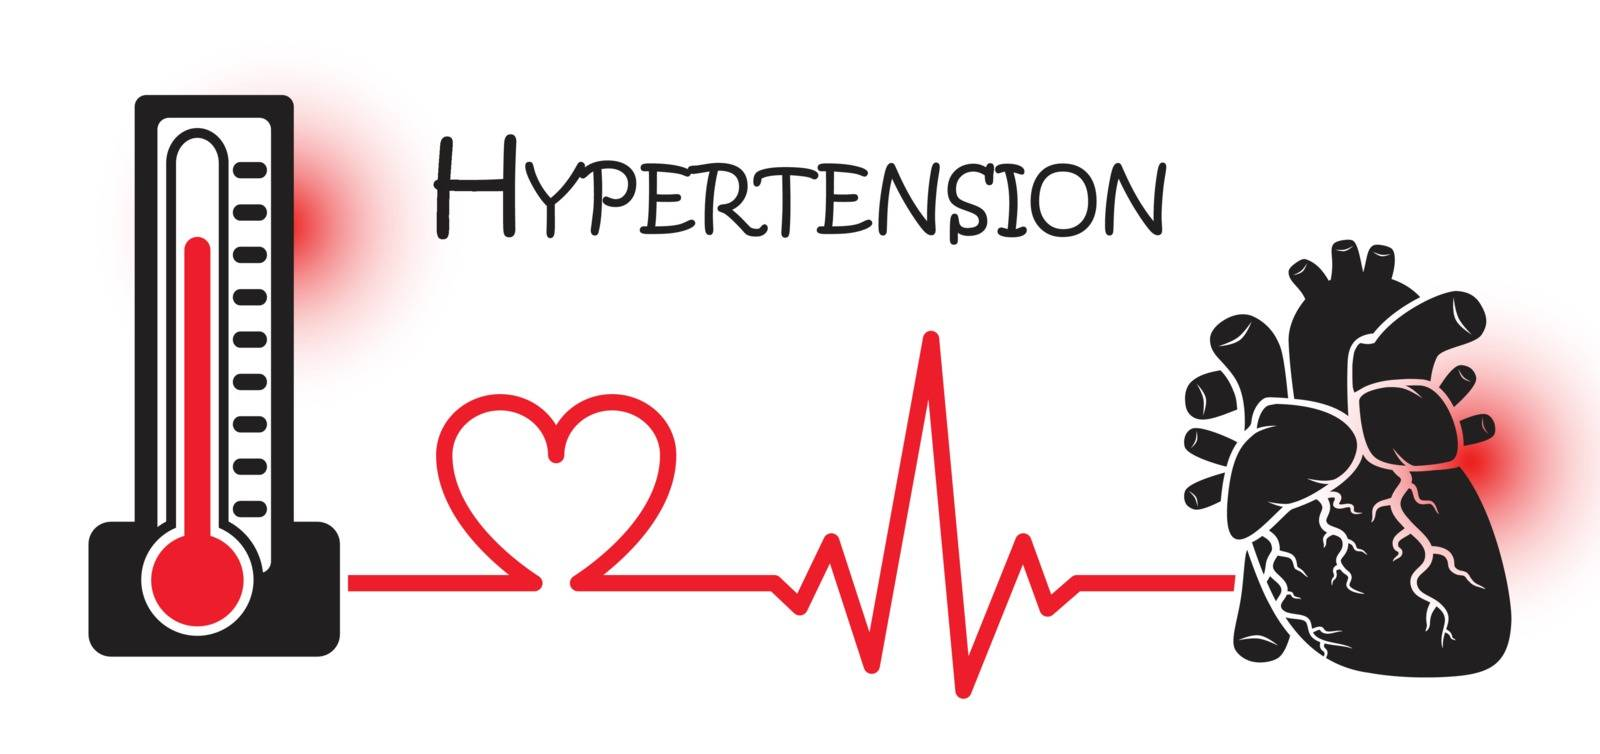 Causes and Symptoms of Hypertension